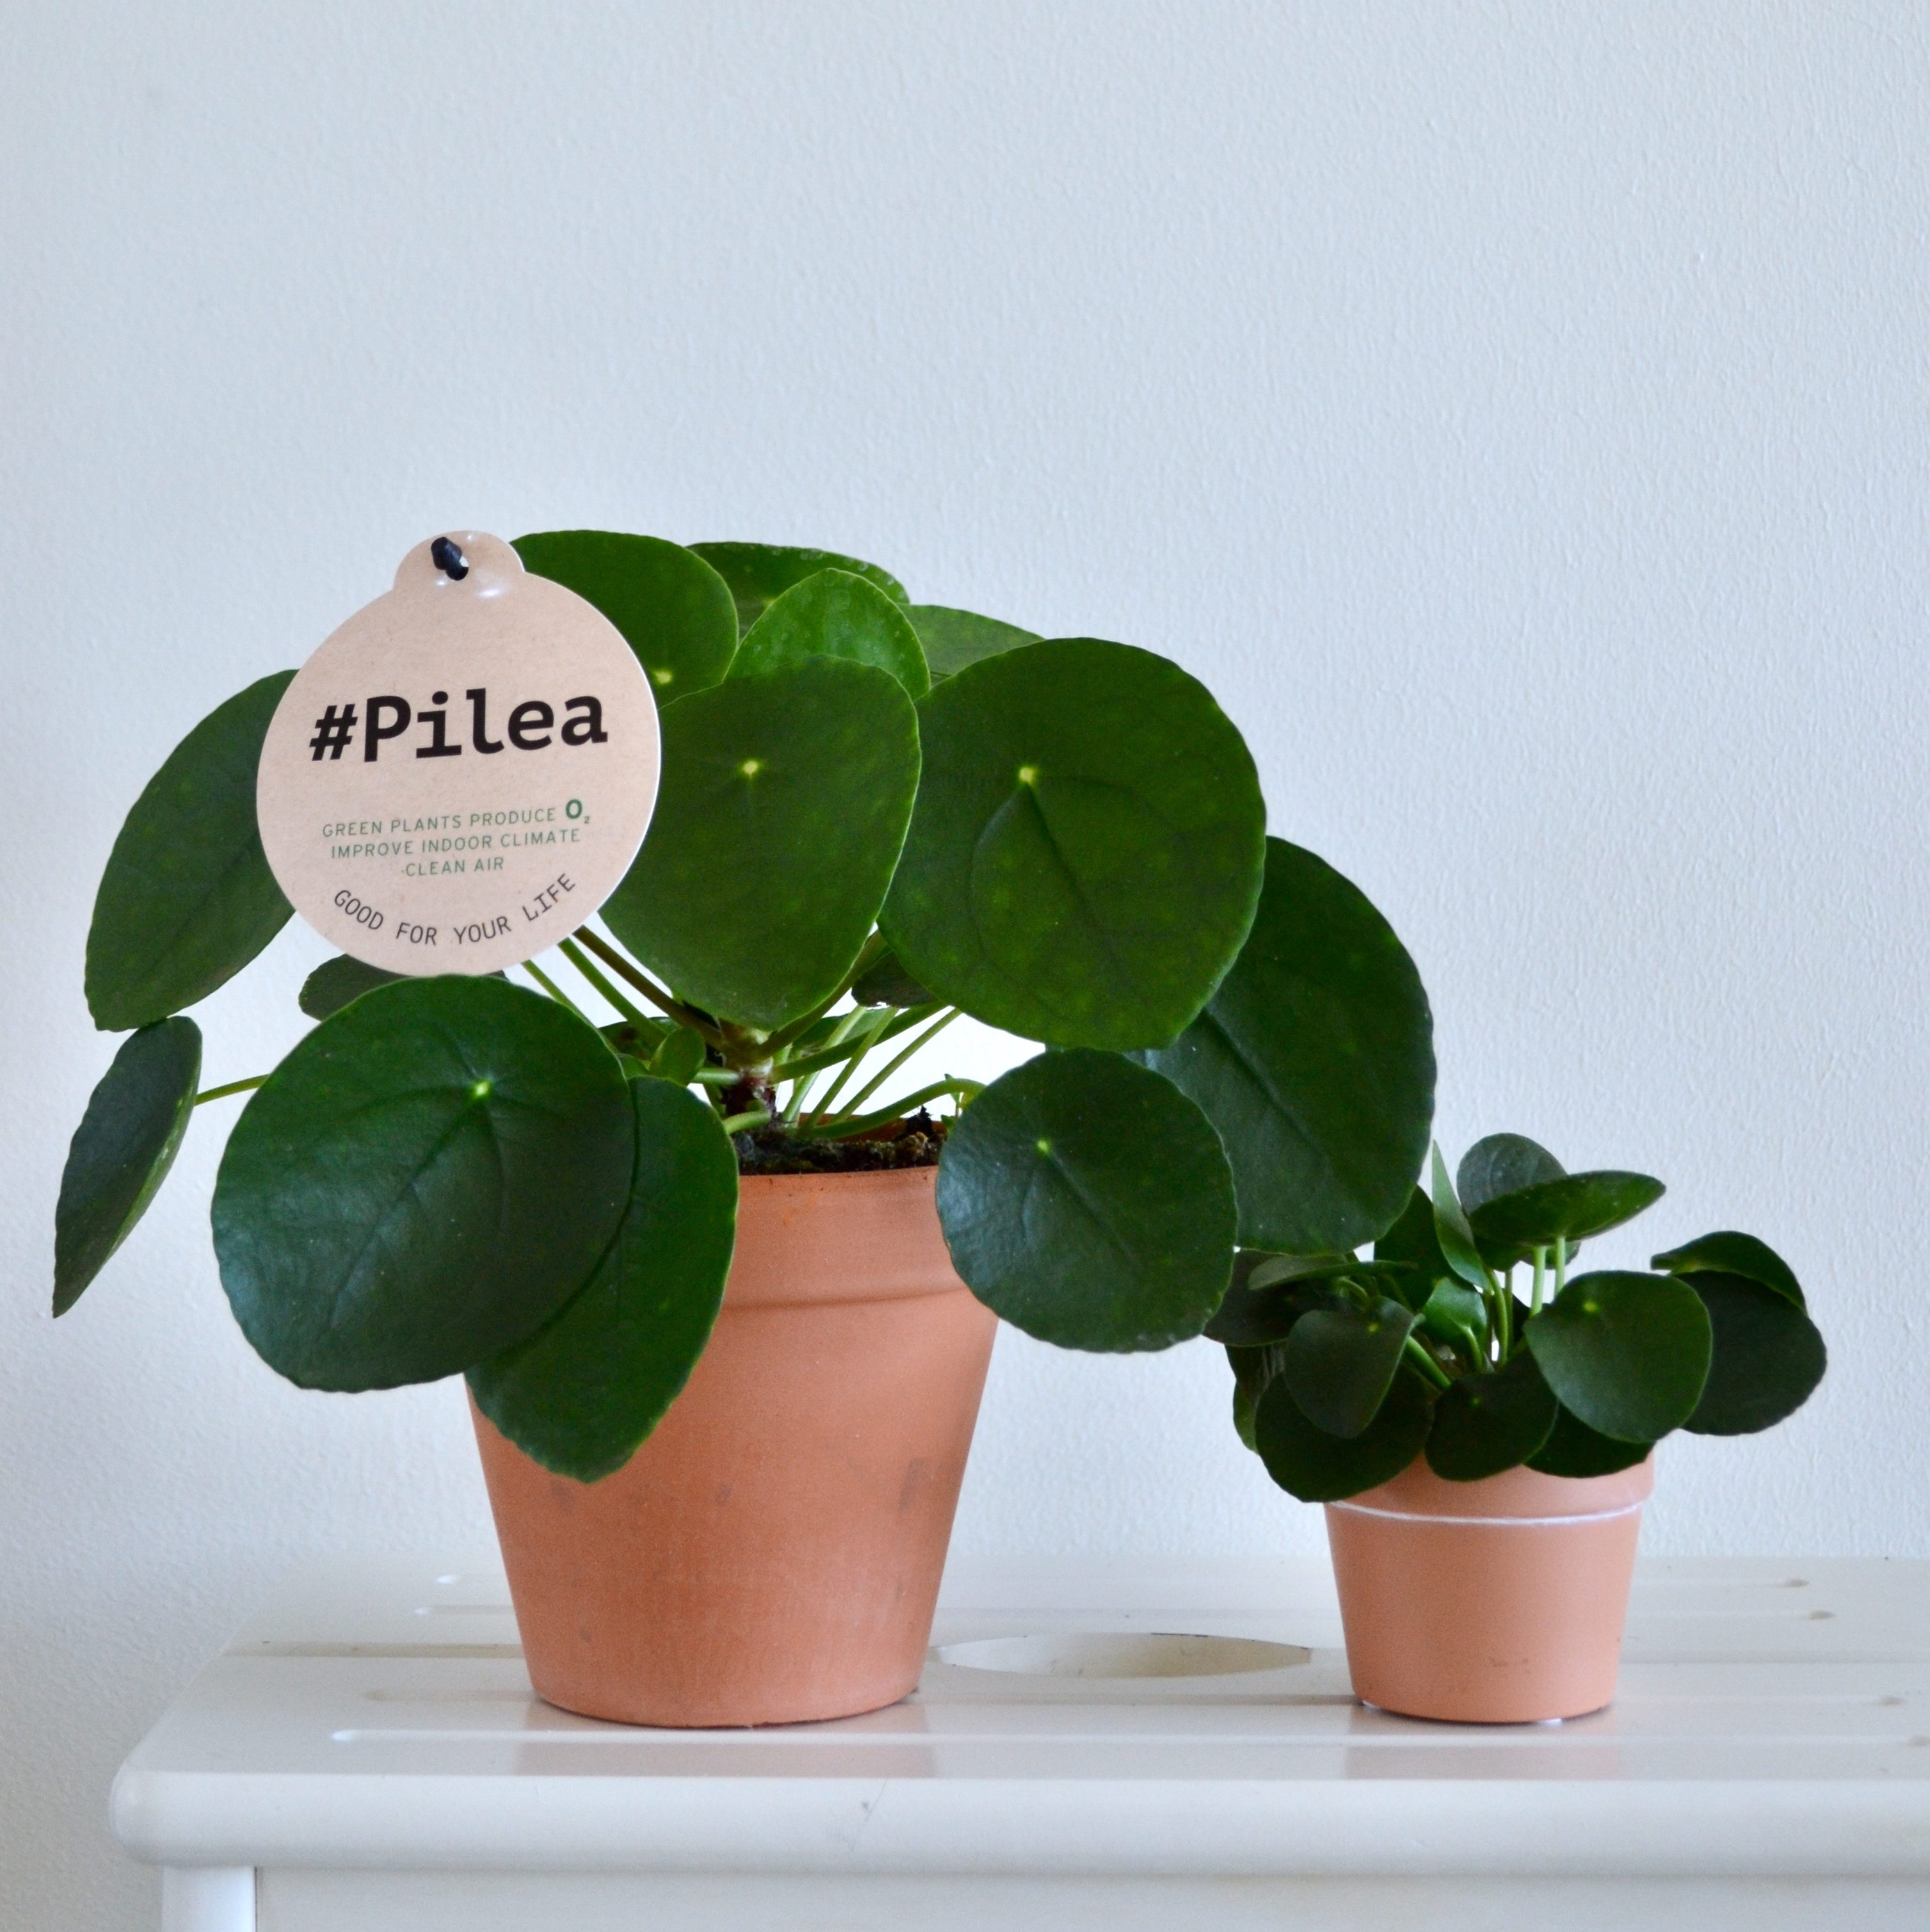 Pilea in claypot